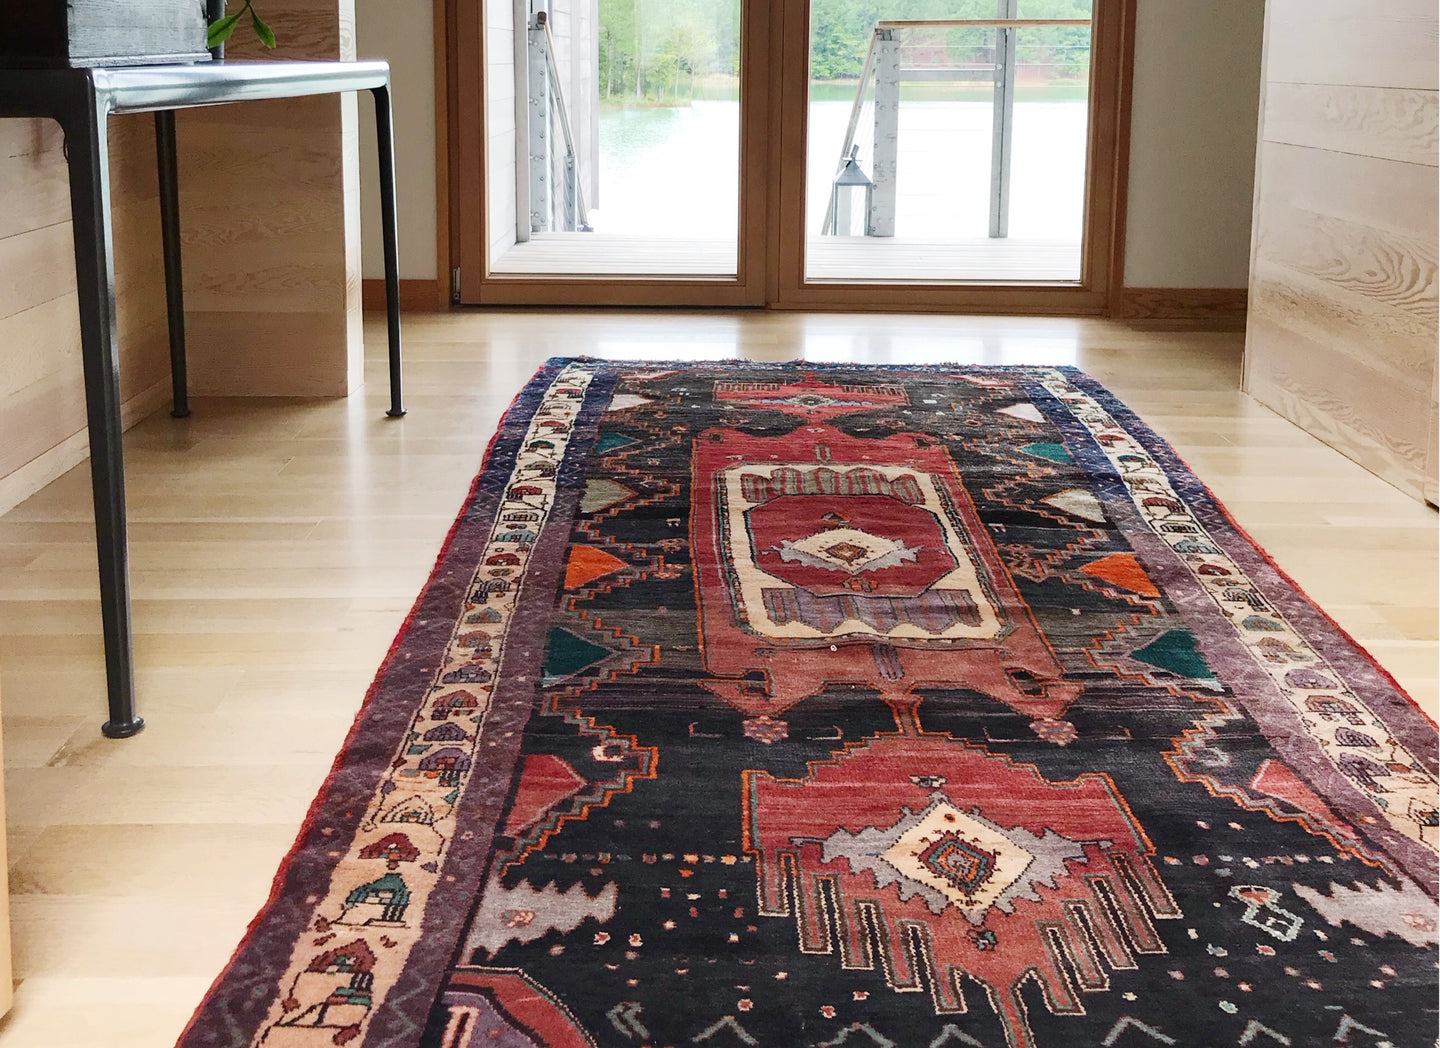 A collection of vintage rugs + decor